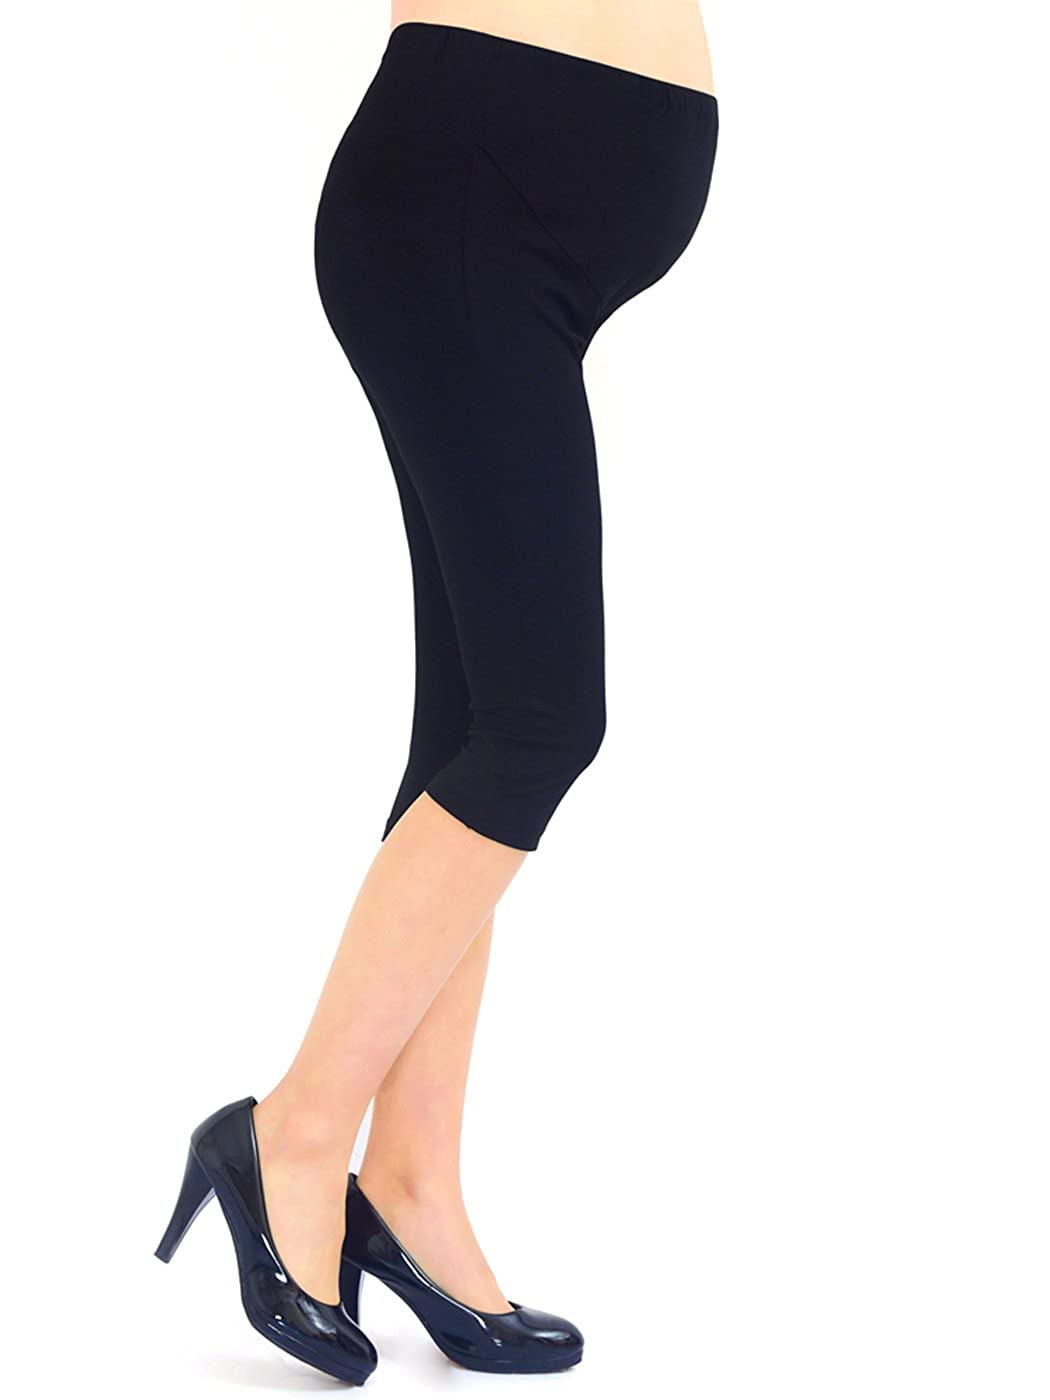 Liang Rou Belly Support Ultra Thin Stretch Maternity Cropped Leggings Black M Baifu International Limited ML8070